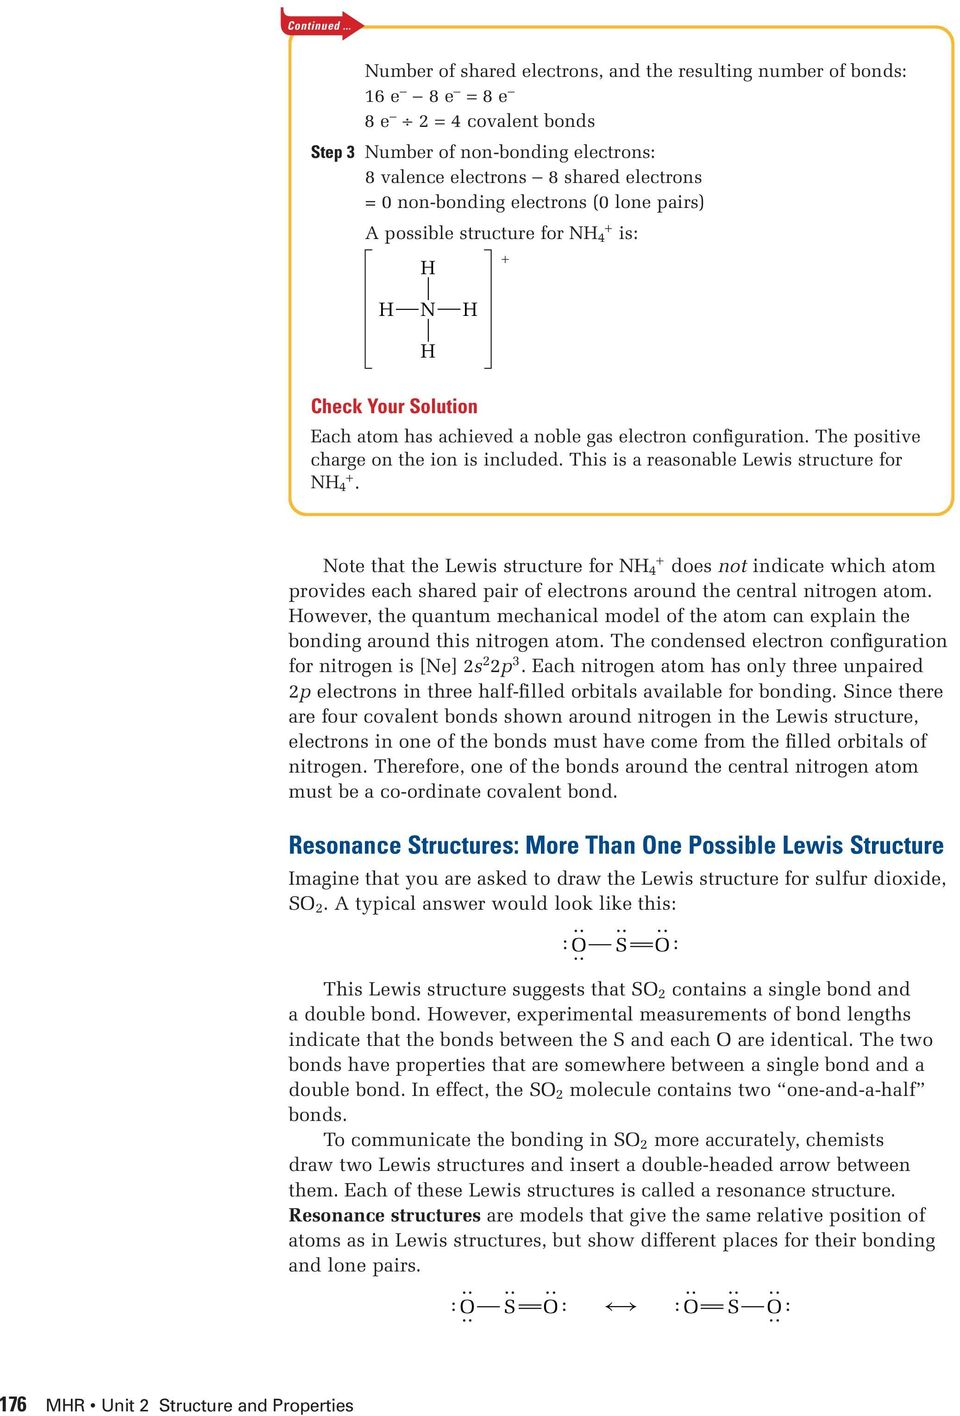 medium resolution of electrons 0 lone pairs possible structure for n 4 is n